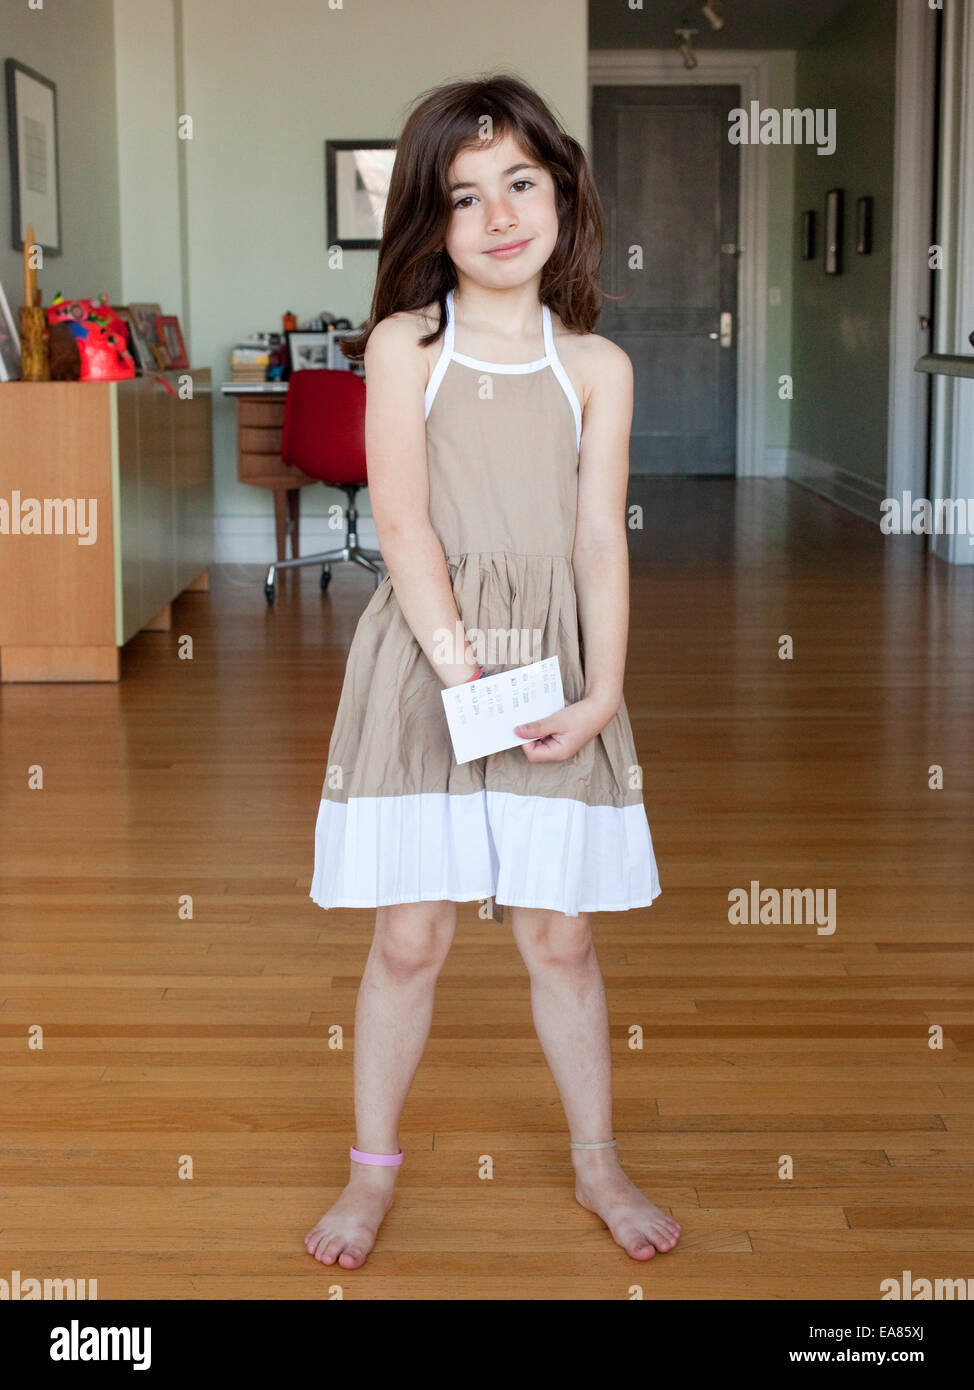 young girl in dress at home - Stock Image